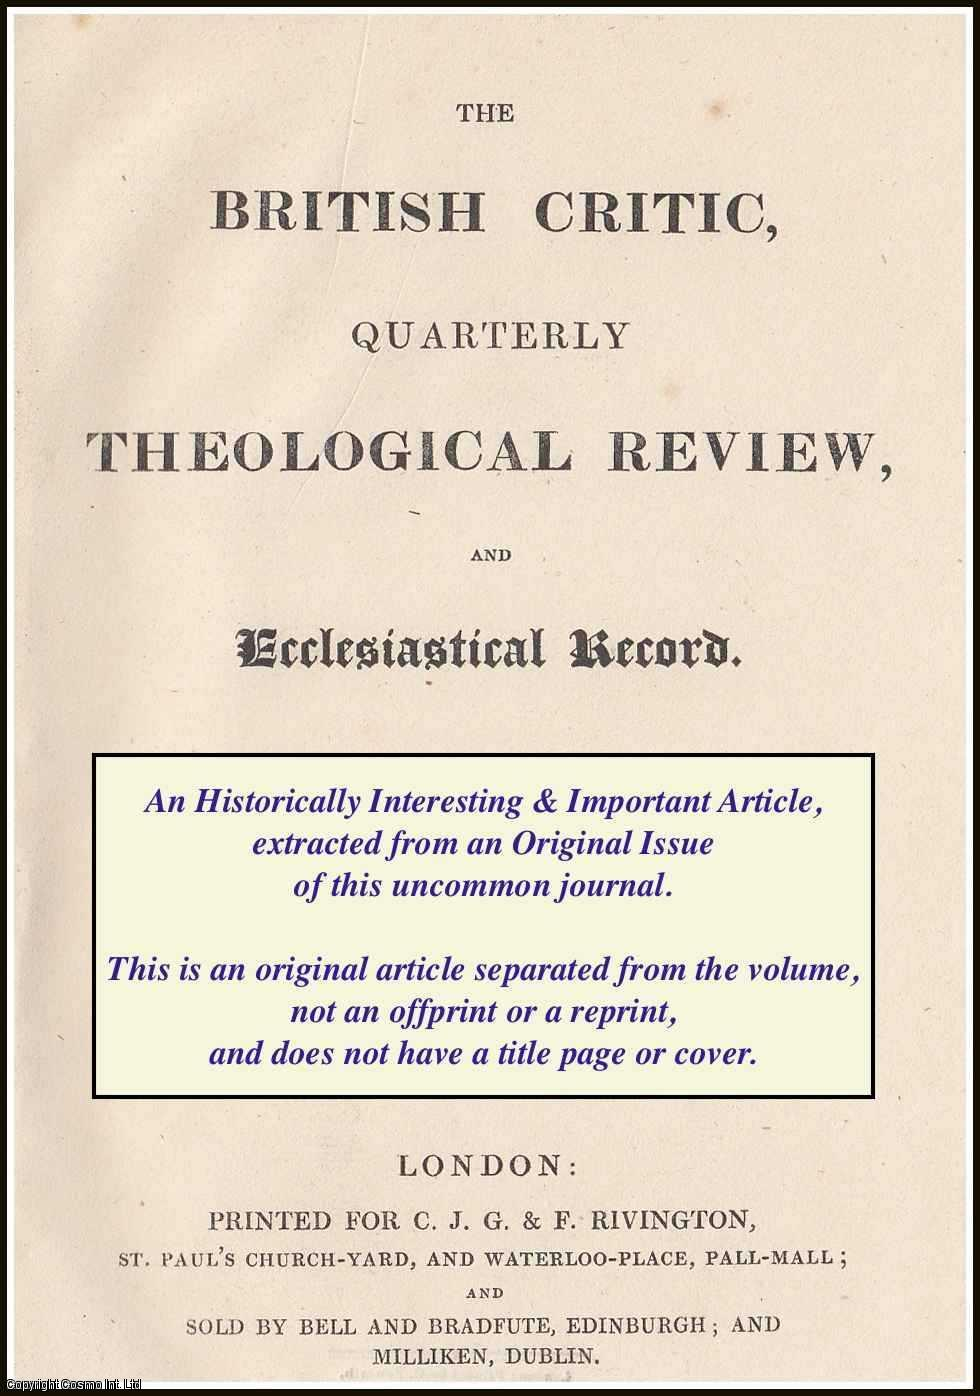 --- - Edward Eliot: On The Religious Education of Slaves. A rare original article from the British Critic, 1827.